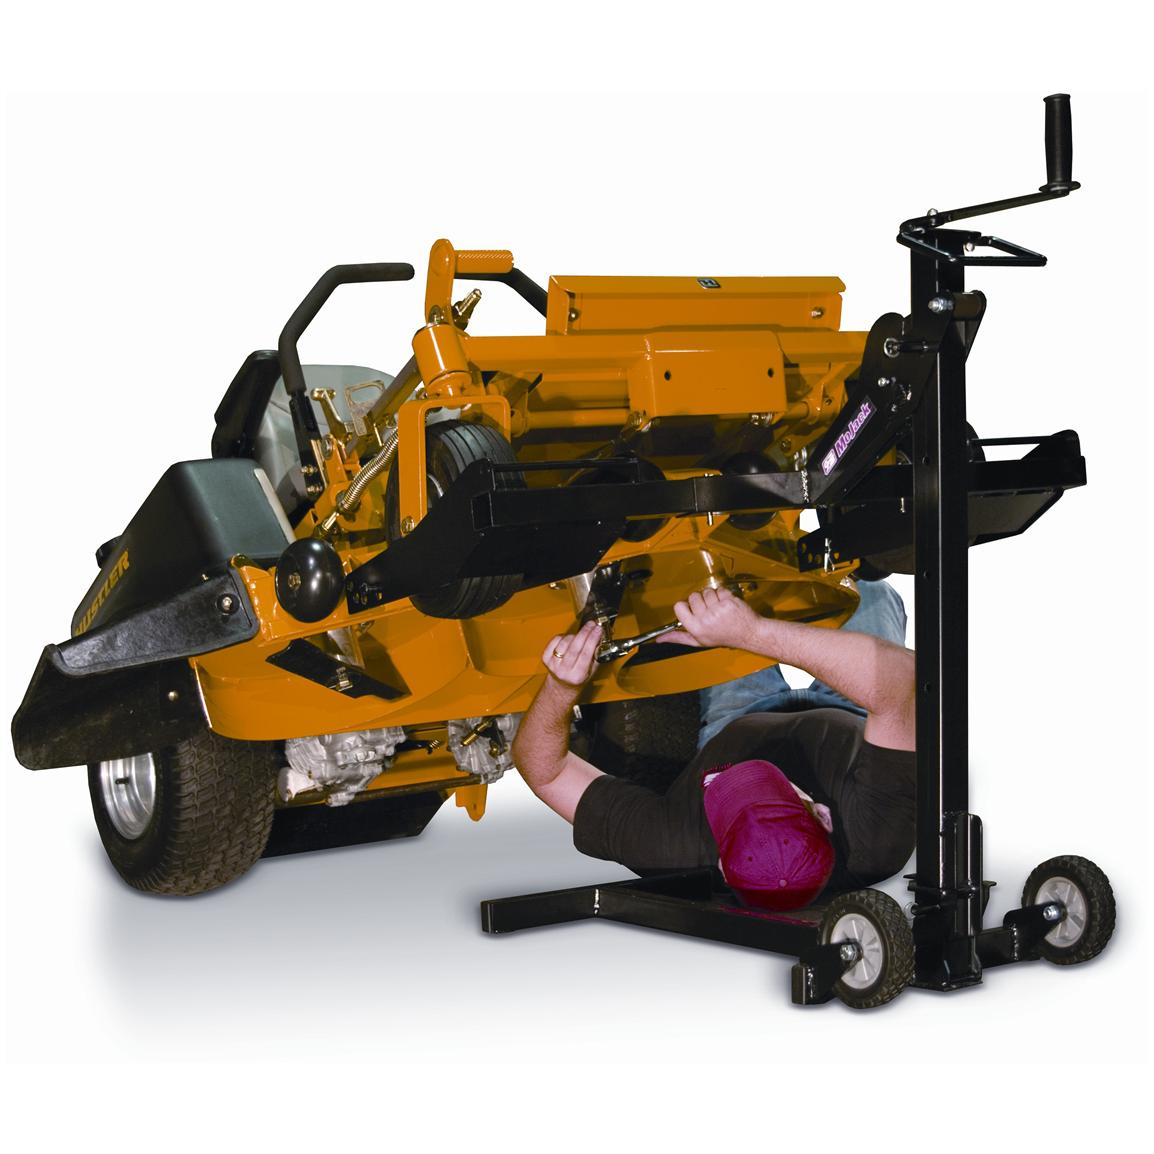 Easily raise mower with one hand, or with power drill